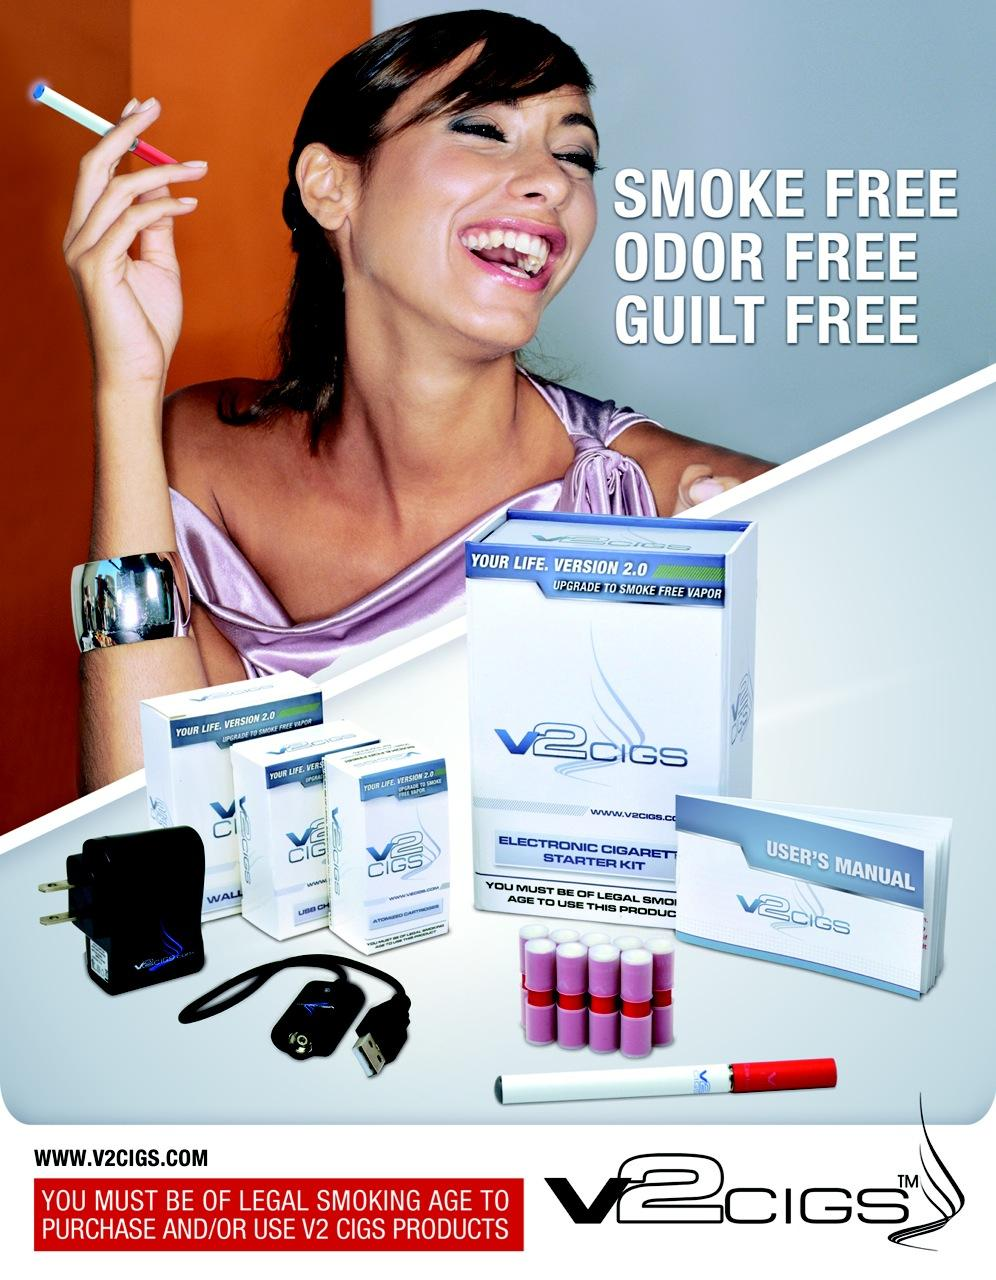 Do you need a spare battery for your V2 standard e-cigarette kit? You can find a range of ecig batteries here at The Electric Tobacconist® USA with free shipping on orders over $ WARNING: This product contains nicotine. Nicotine is an addictive chemical. V2 Cigs battery for your V2 Standard Starter Kit;.